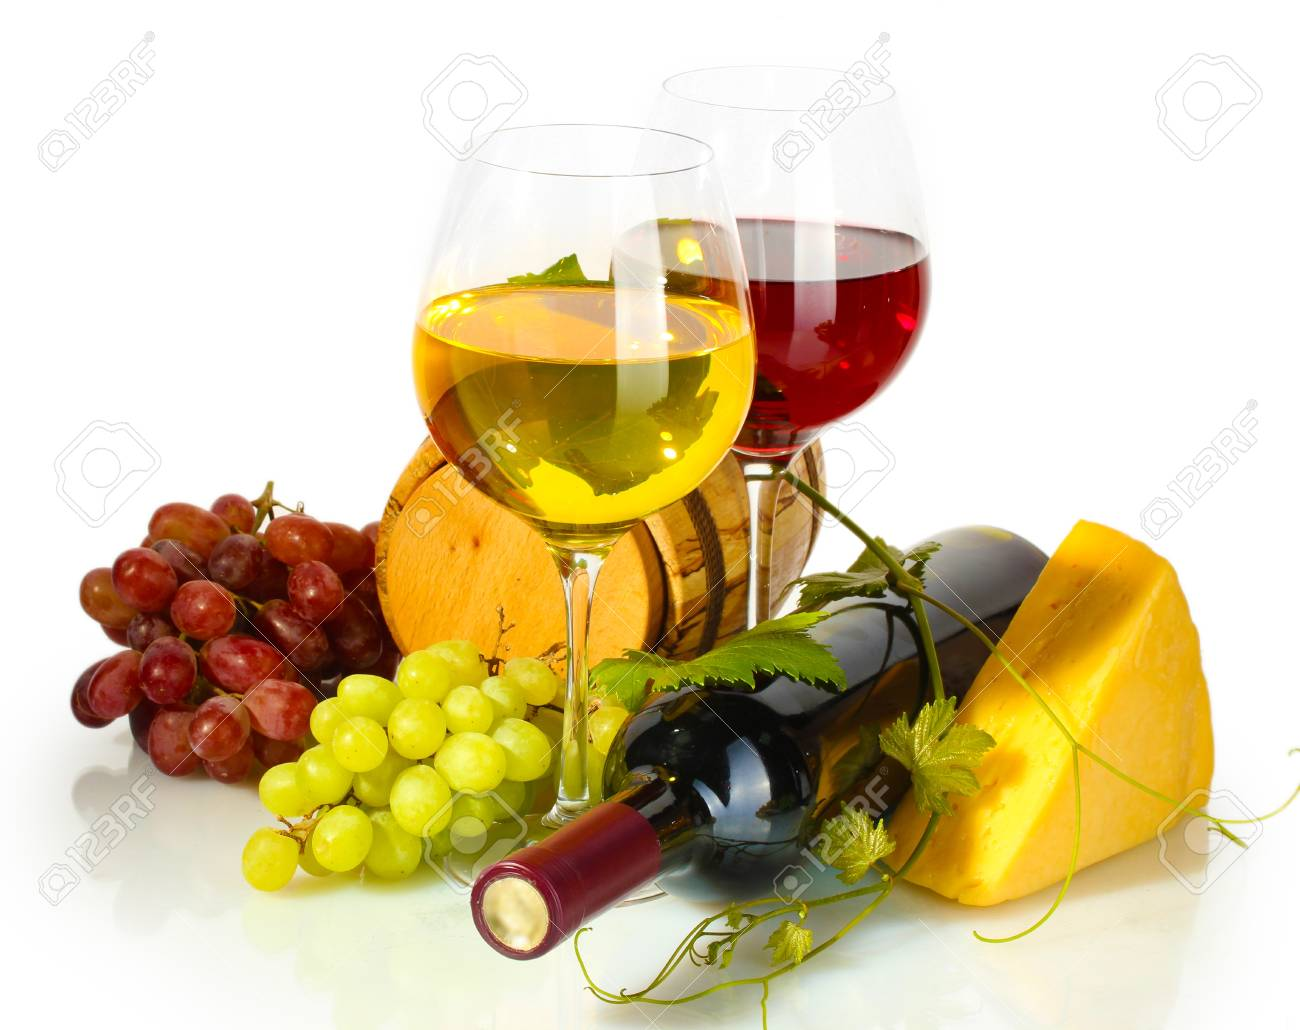 barrel, bottle and glasses of wine, cheese and ripe grapes isolated on white Stock Photo - 15065742